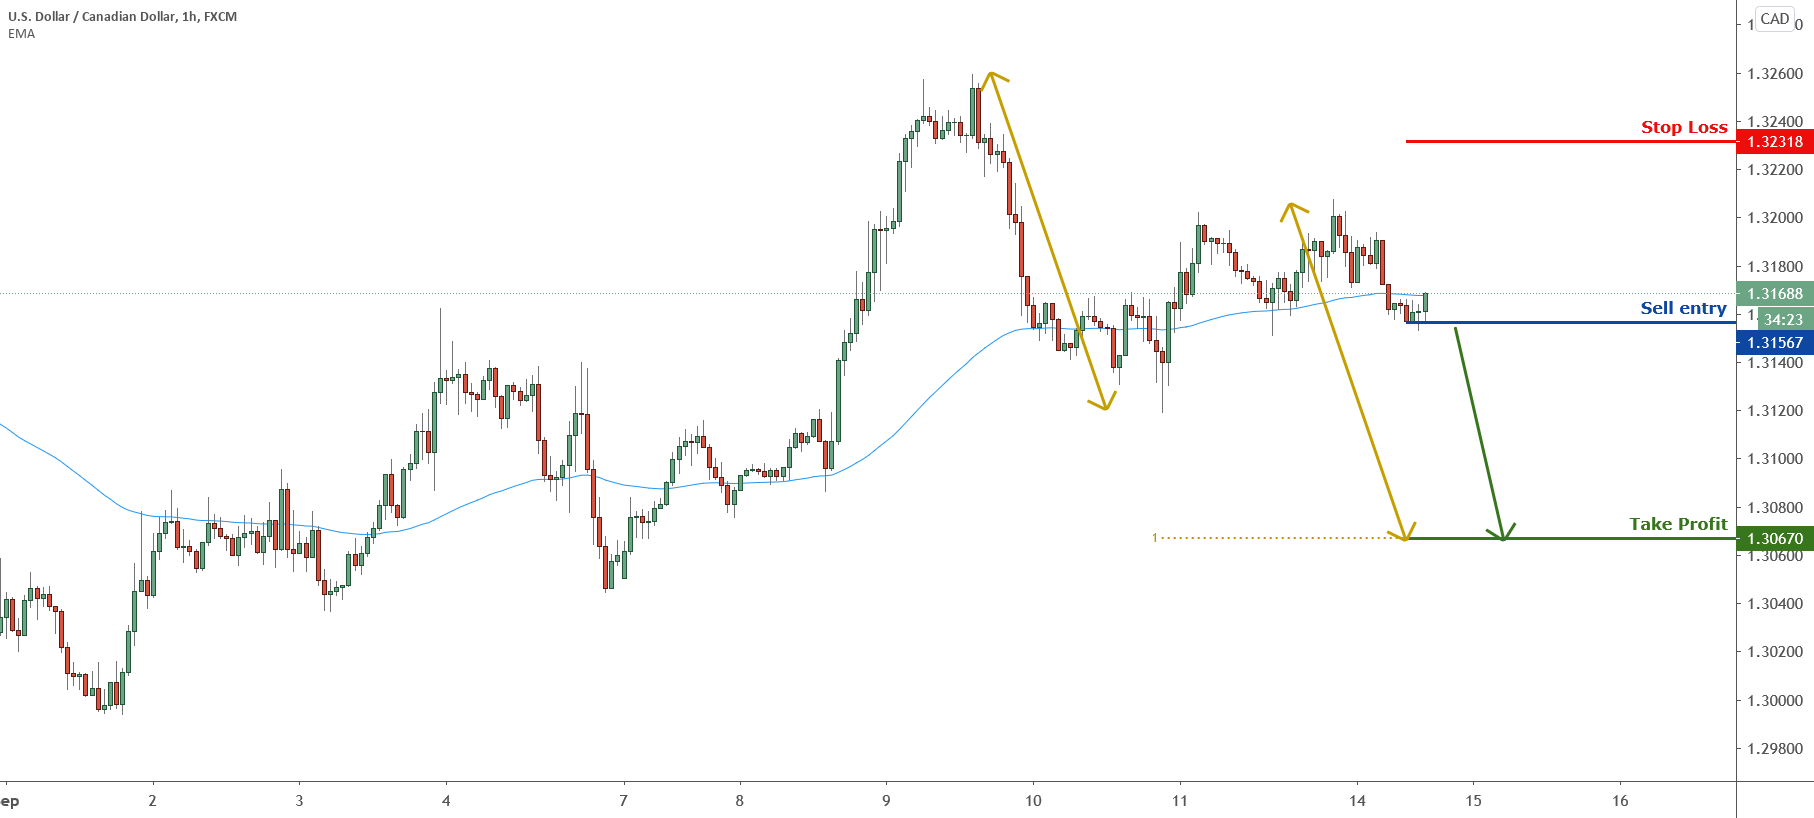 Possible trend shift in USDCAD – going short for FX:USDCAD by FXCM